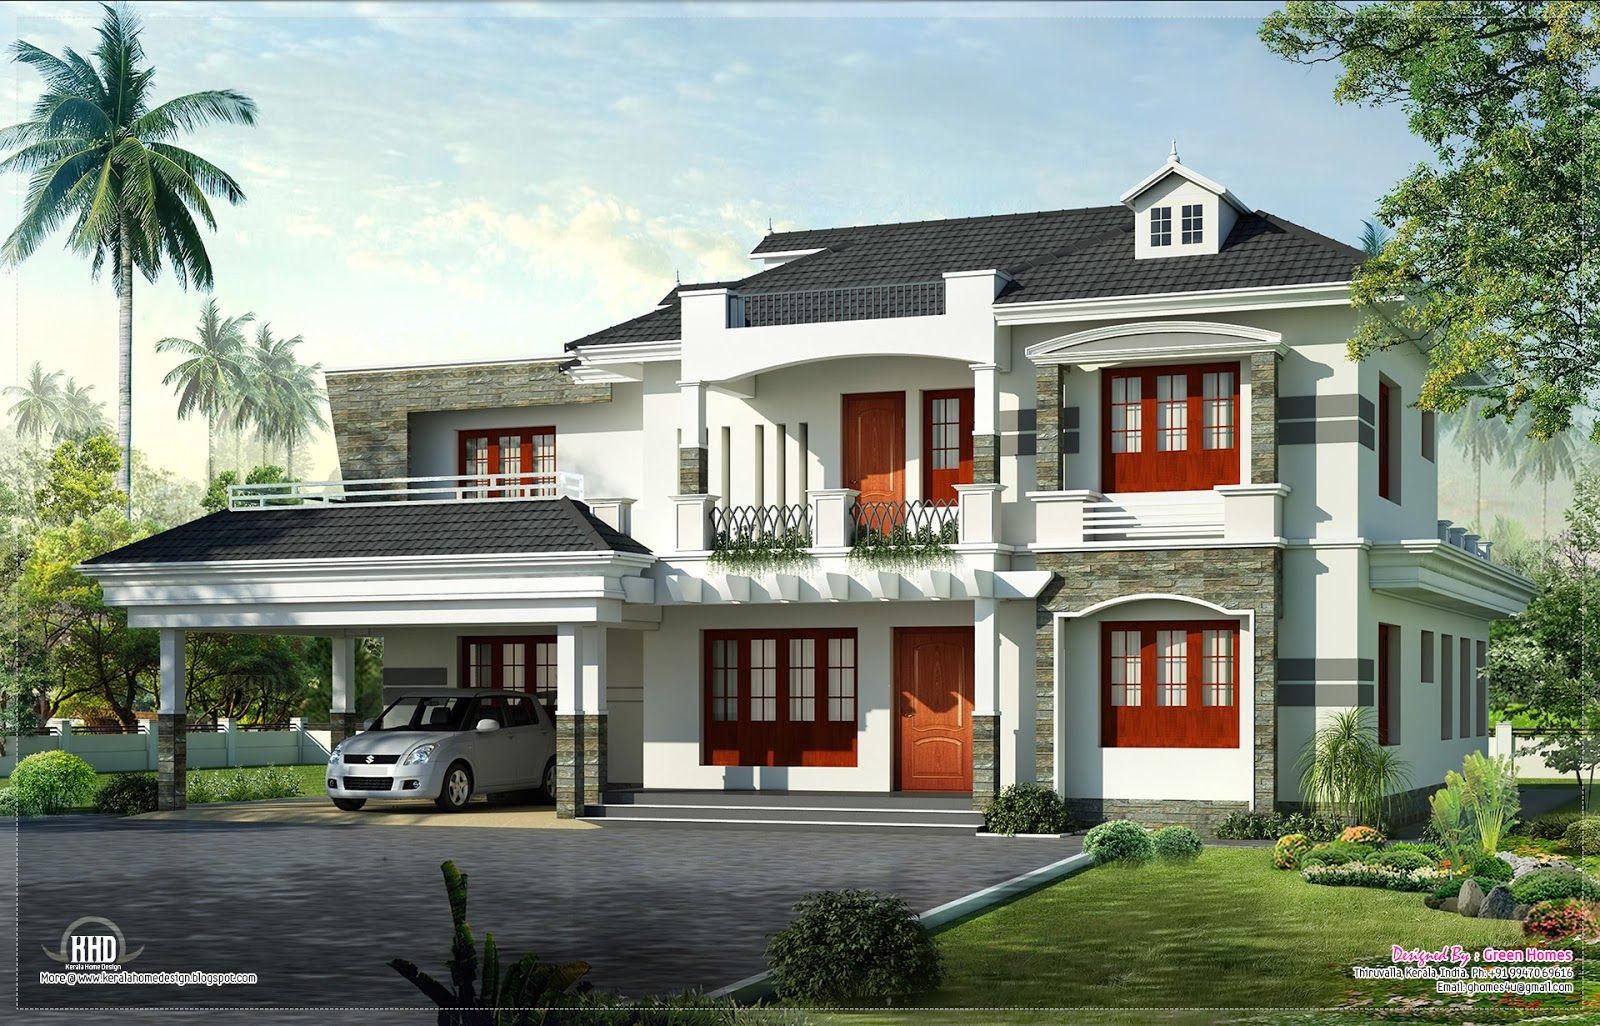 Awesome Amazing Designs For New Homes New Kerala Home On Home Design Largest Home Design Picture Inspirations Pitcheantrous